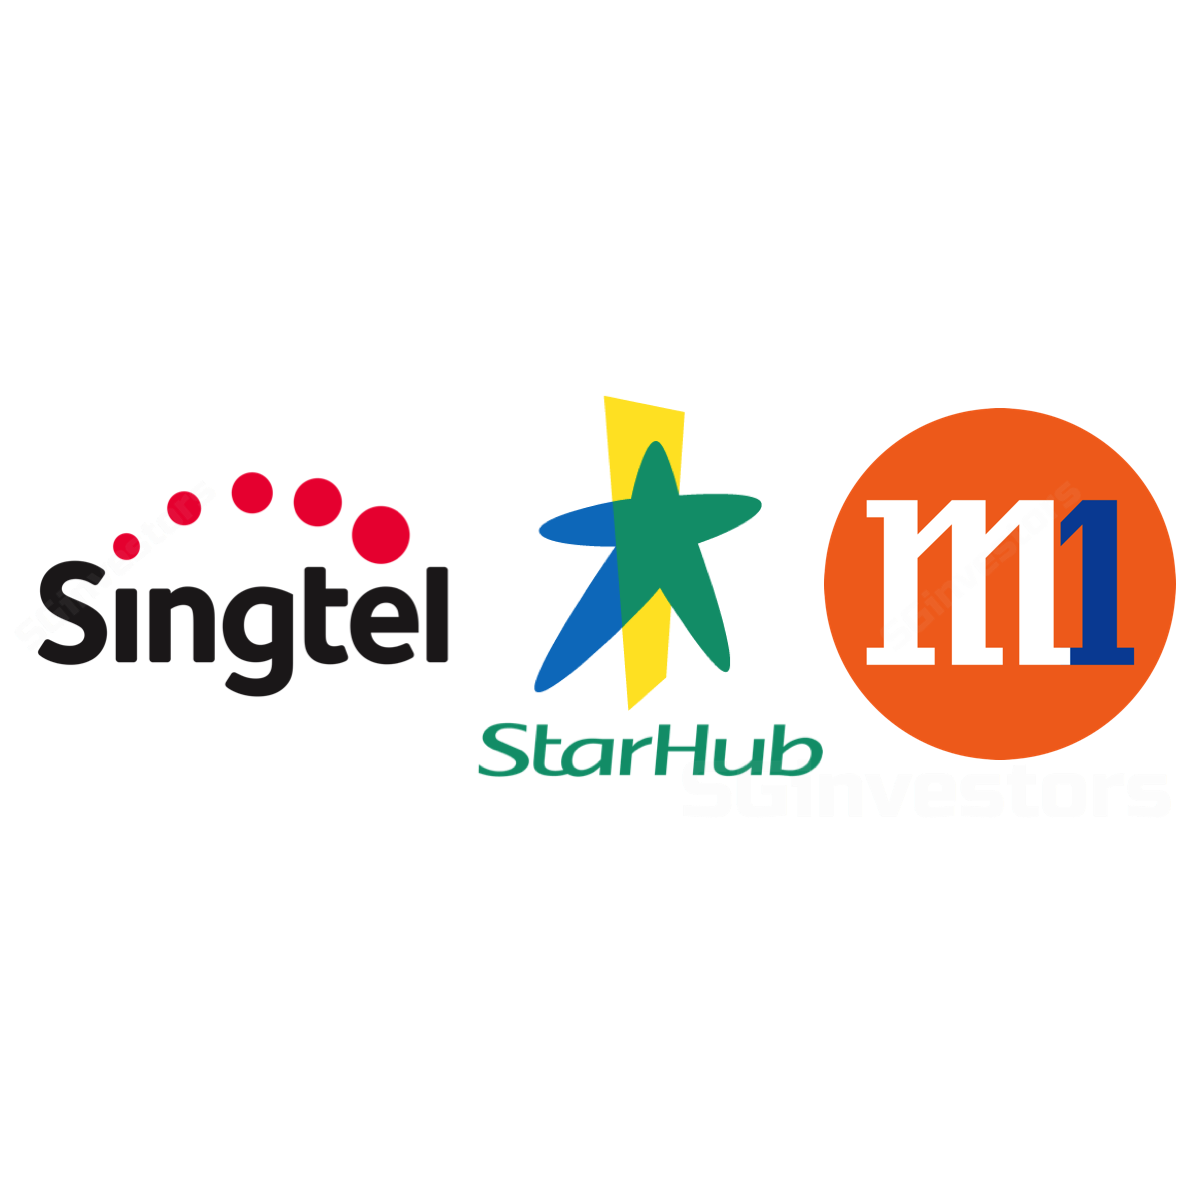 Telecom Sector - OCBC Investment 2018-02-21: Switch From Starhub To Singtel